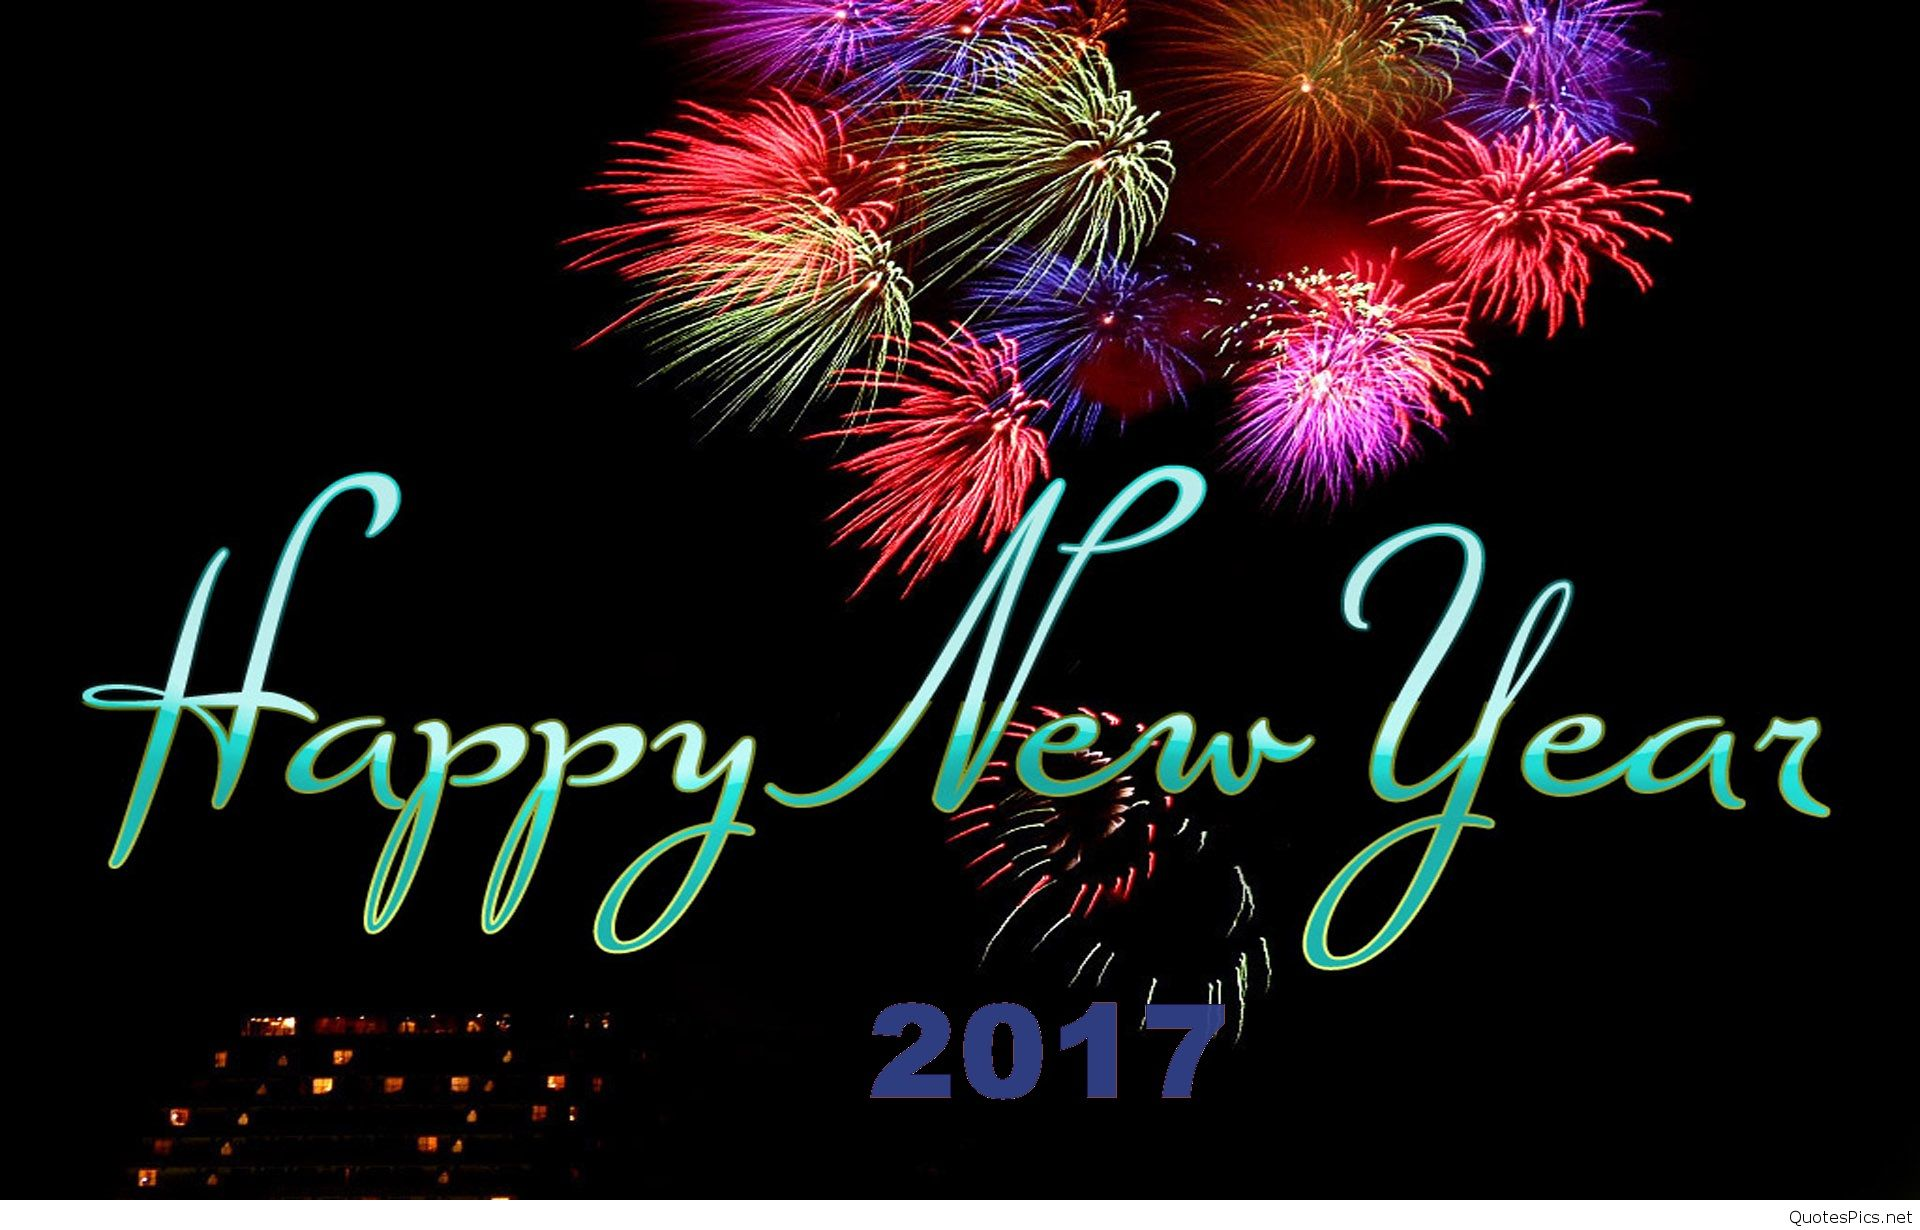 Happy new year wallpapers 2017   QuotesPics 1920x1230